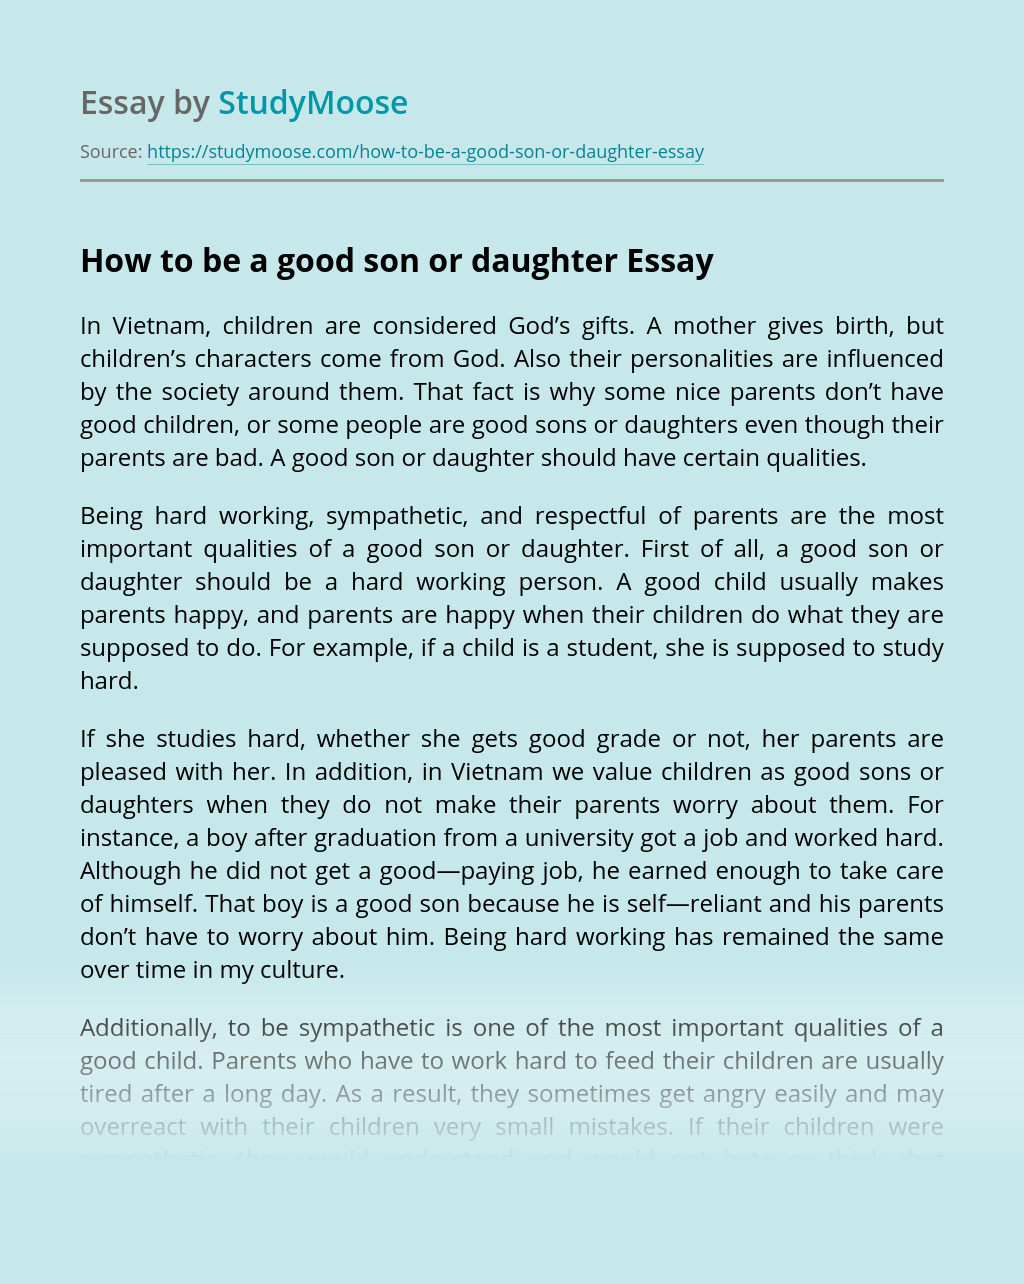 How to be a good son or daughter